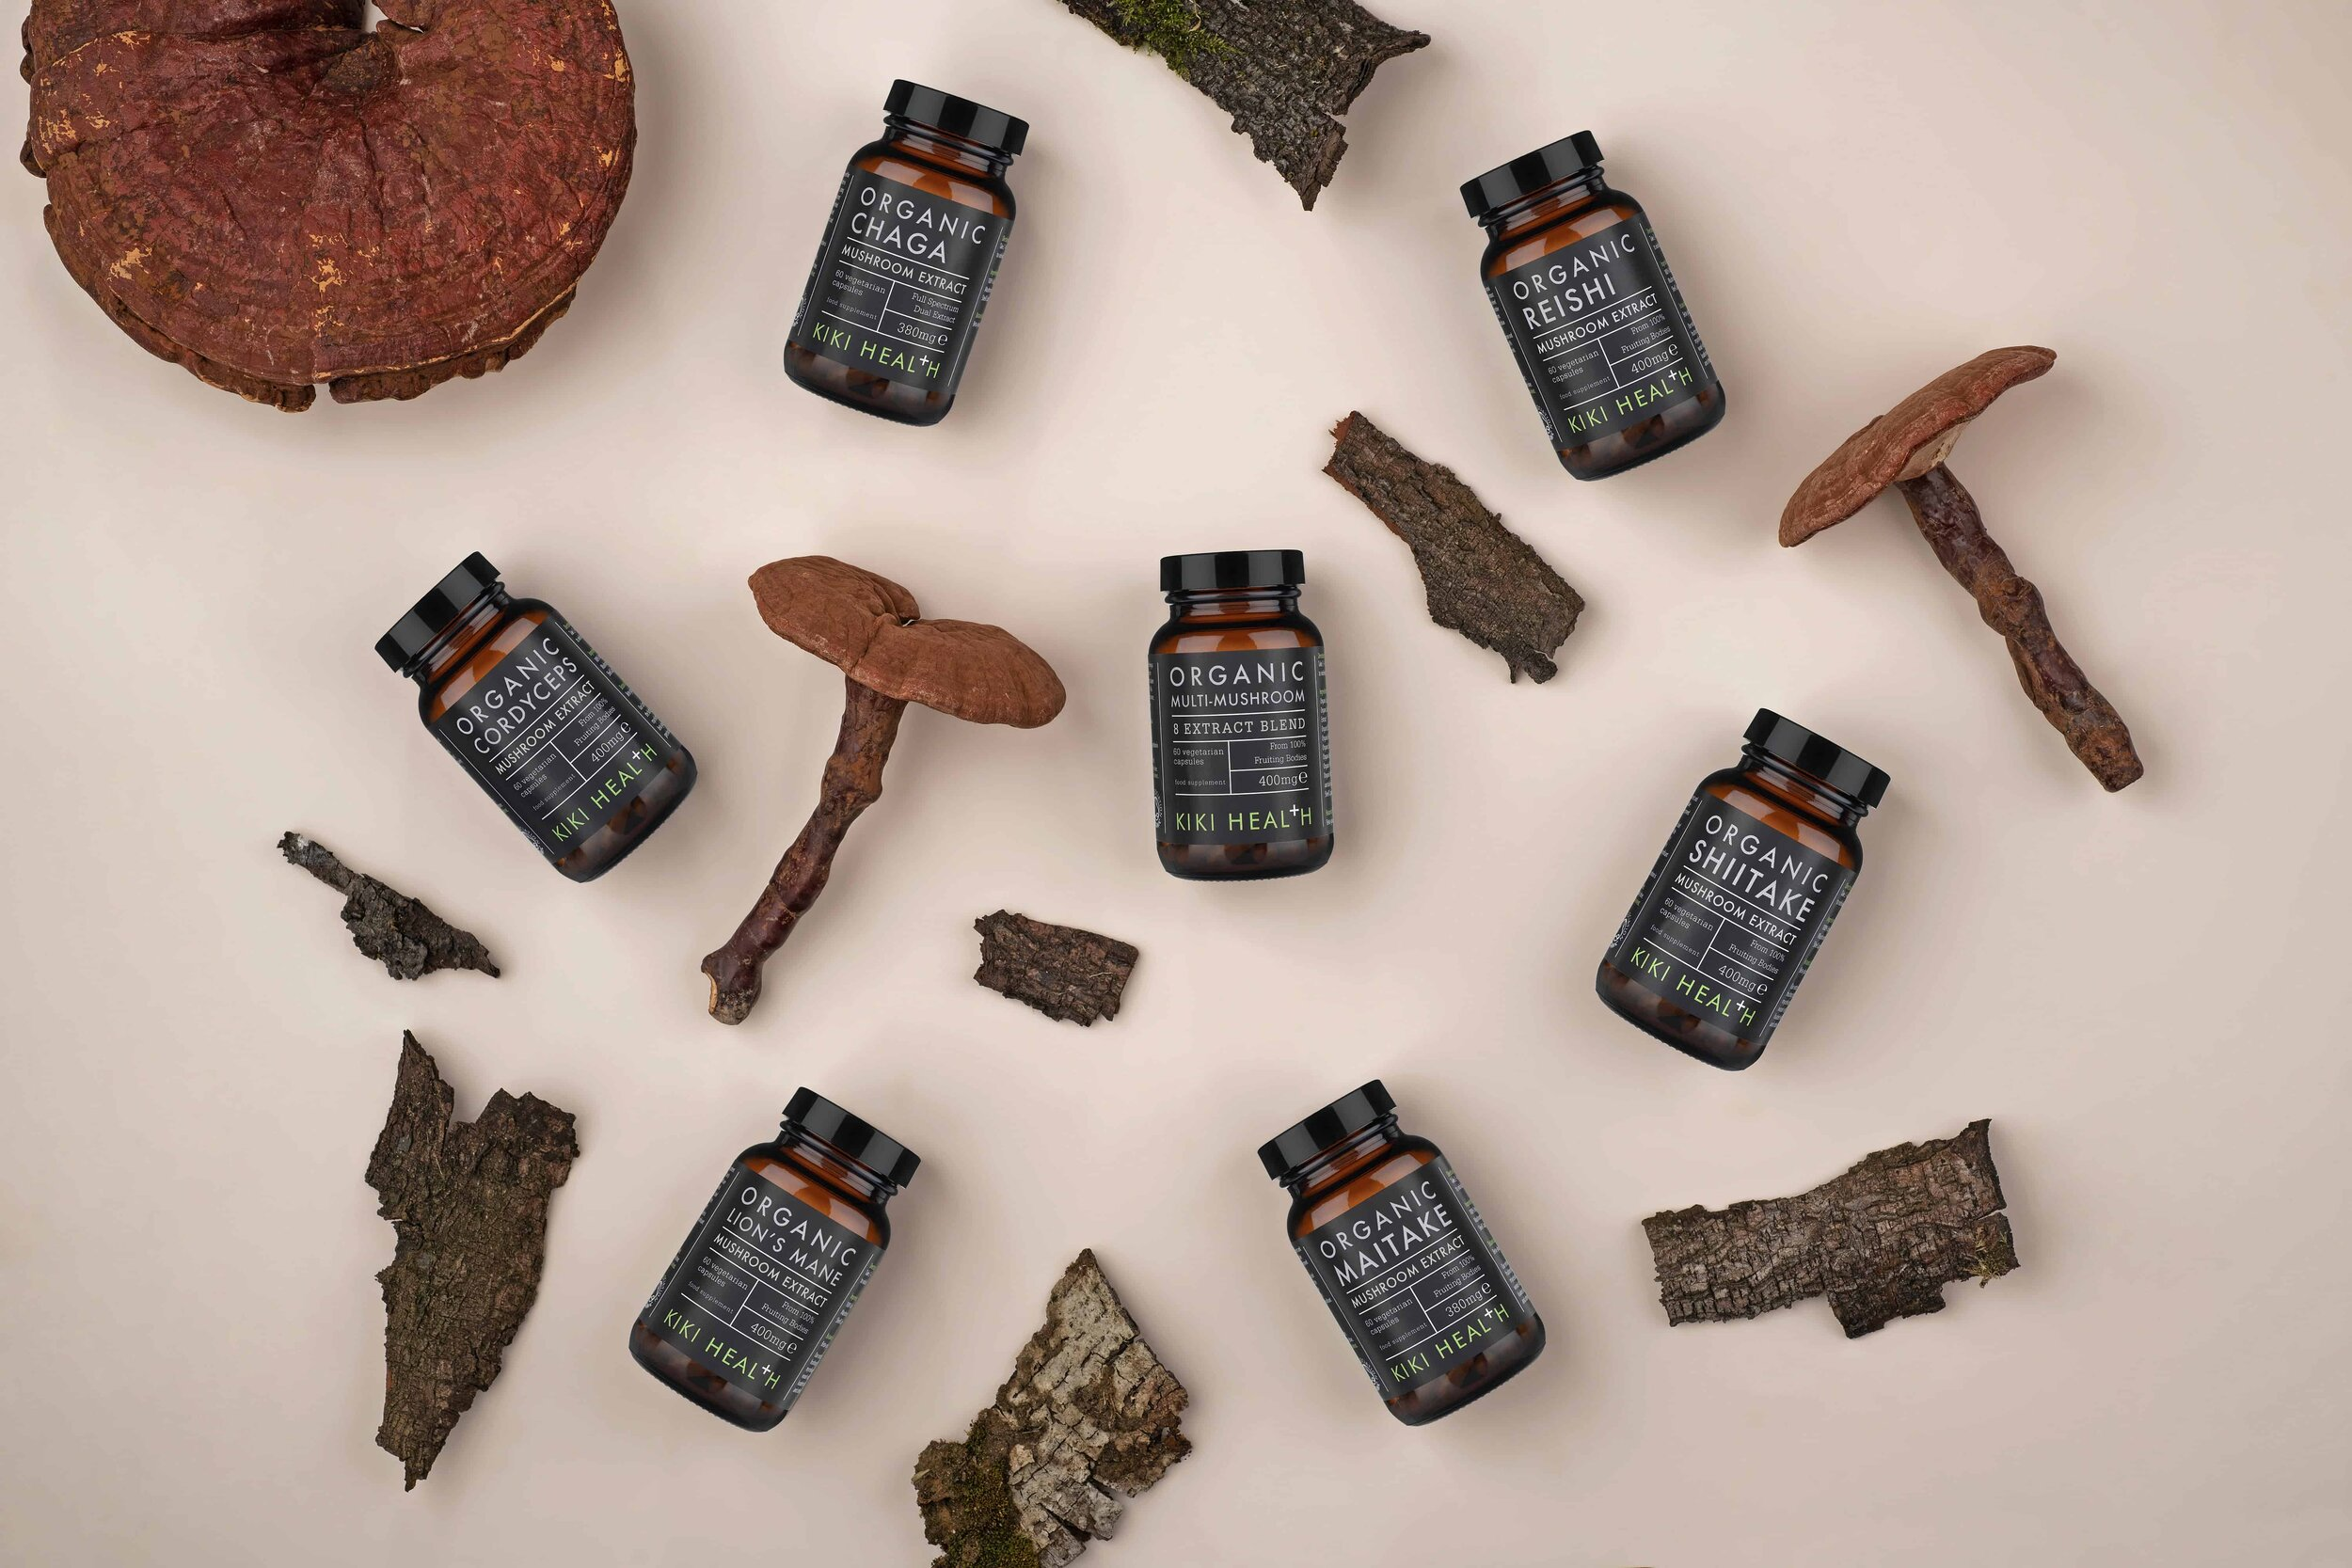 Best Supplements For Weight Loss (The Only Supplements You Need To Buy)